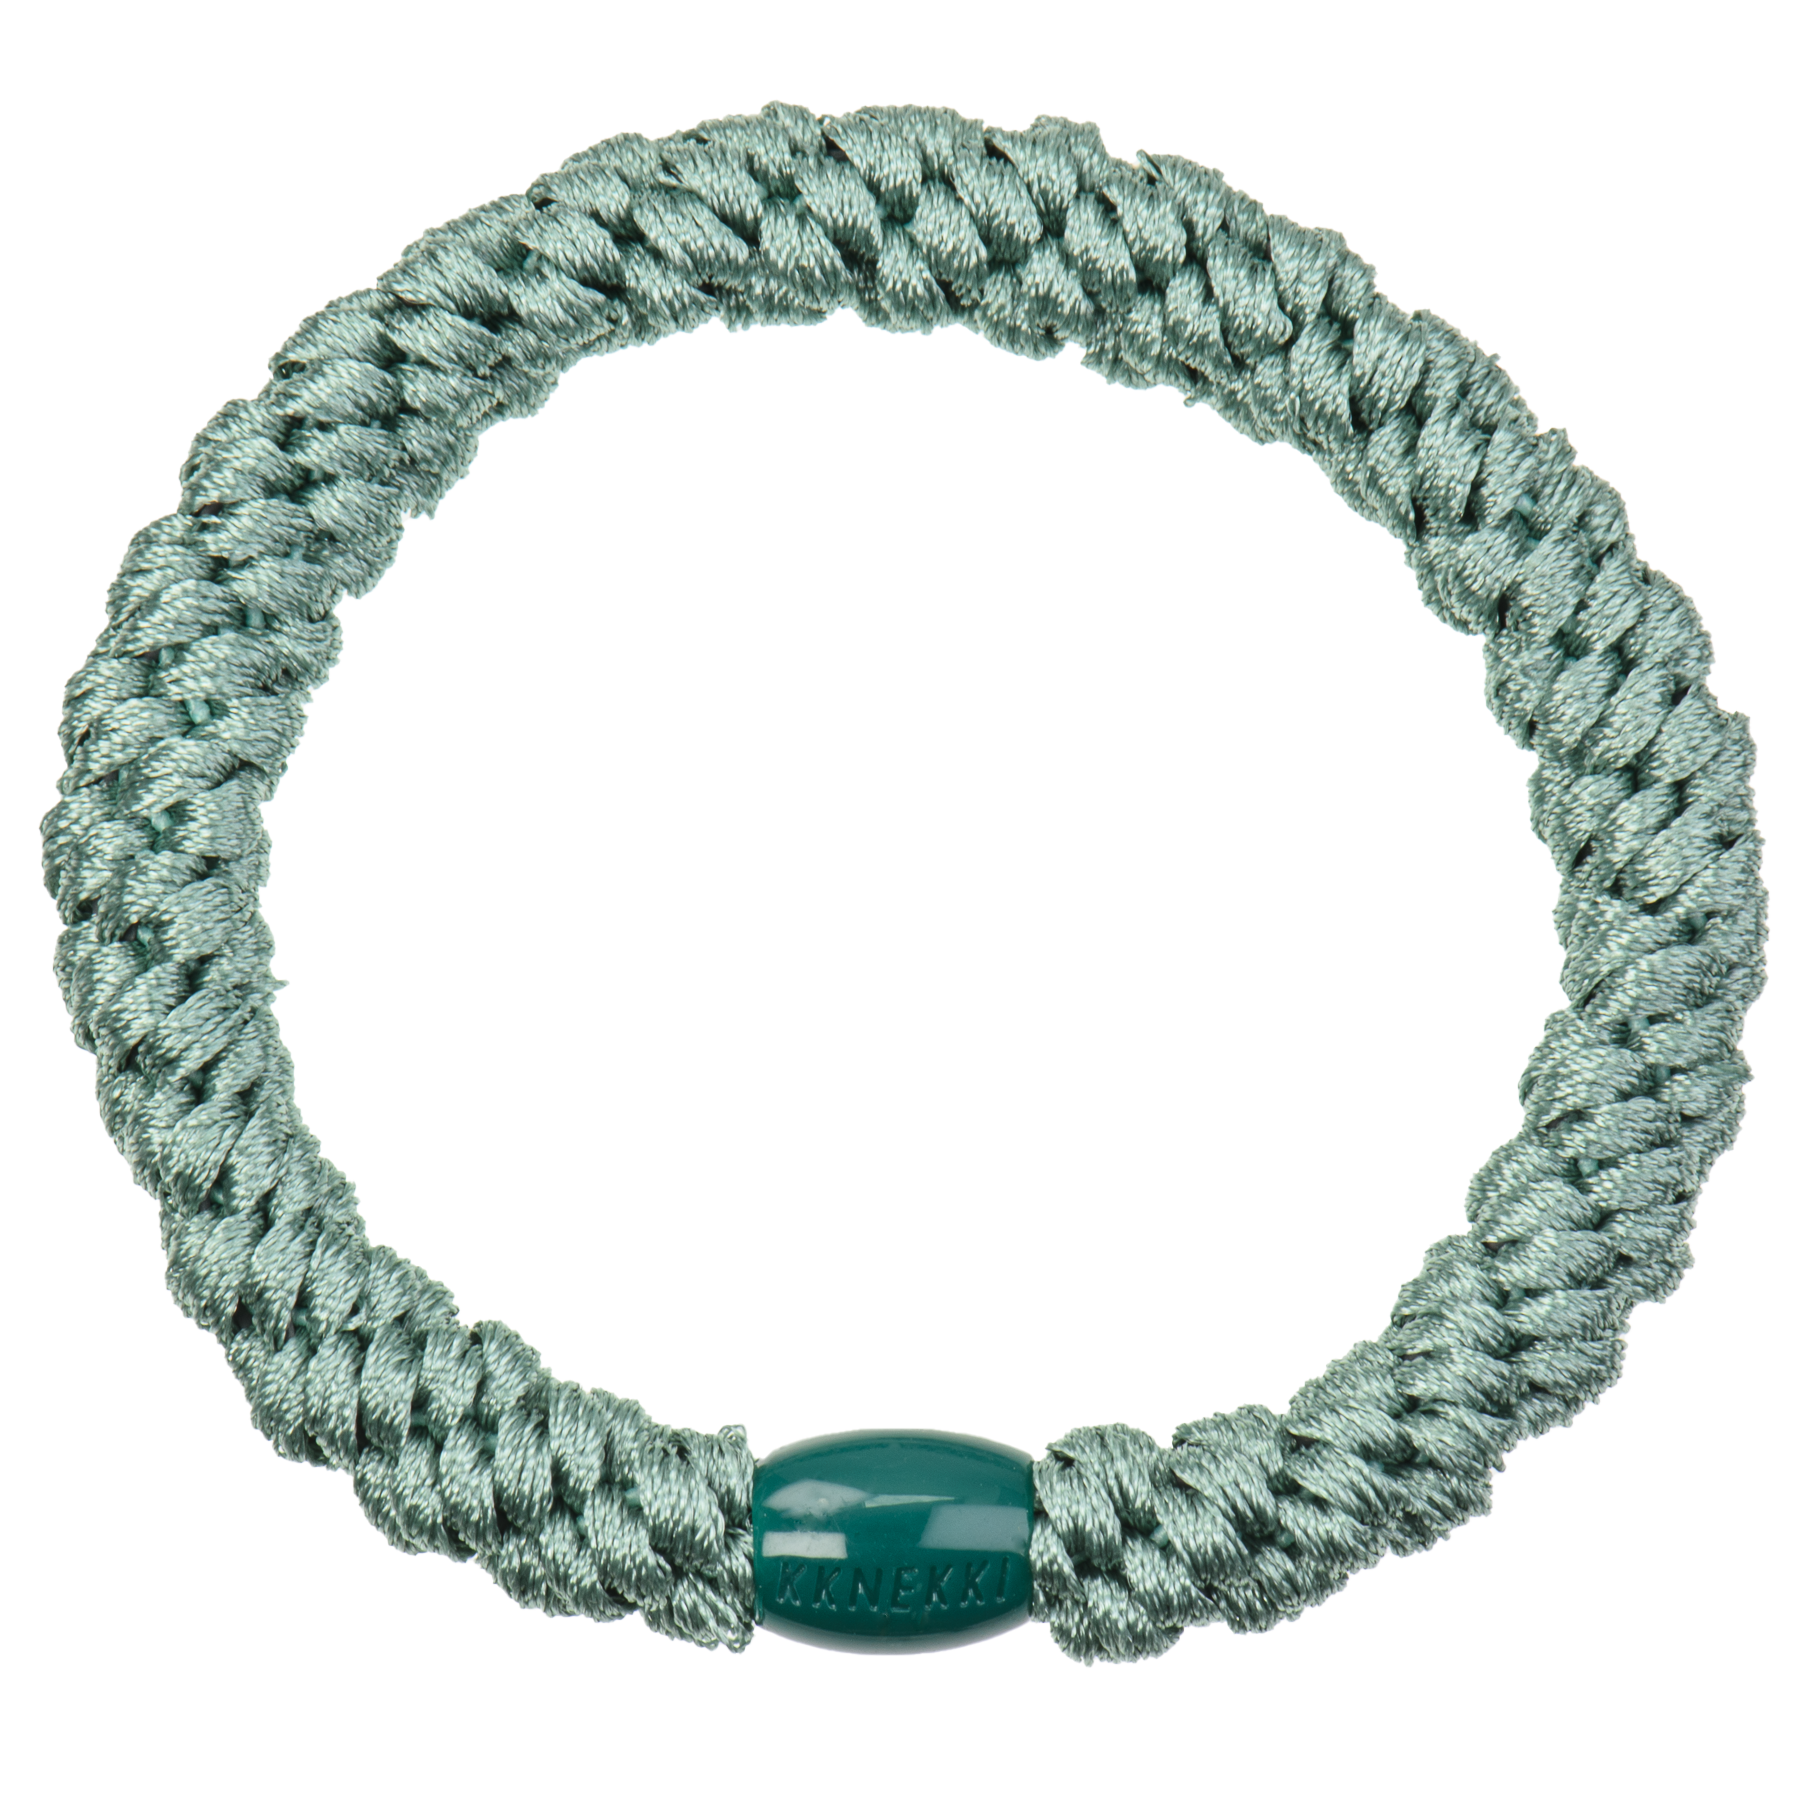 Haargummi / Armband - Faded green 5152 - KKNEKKI